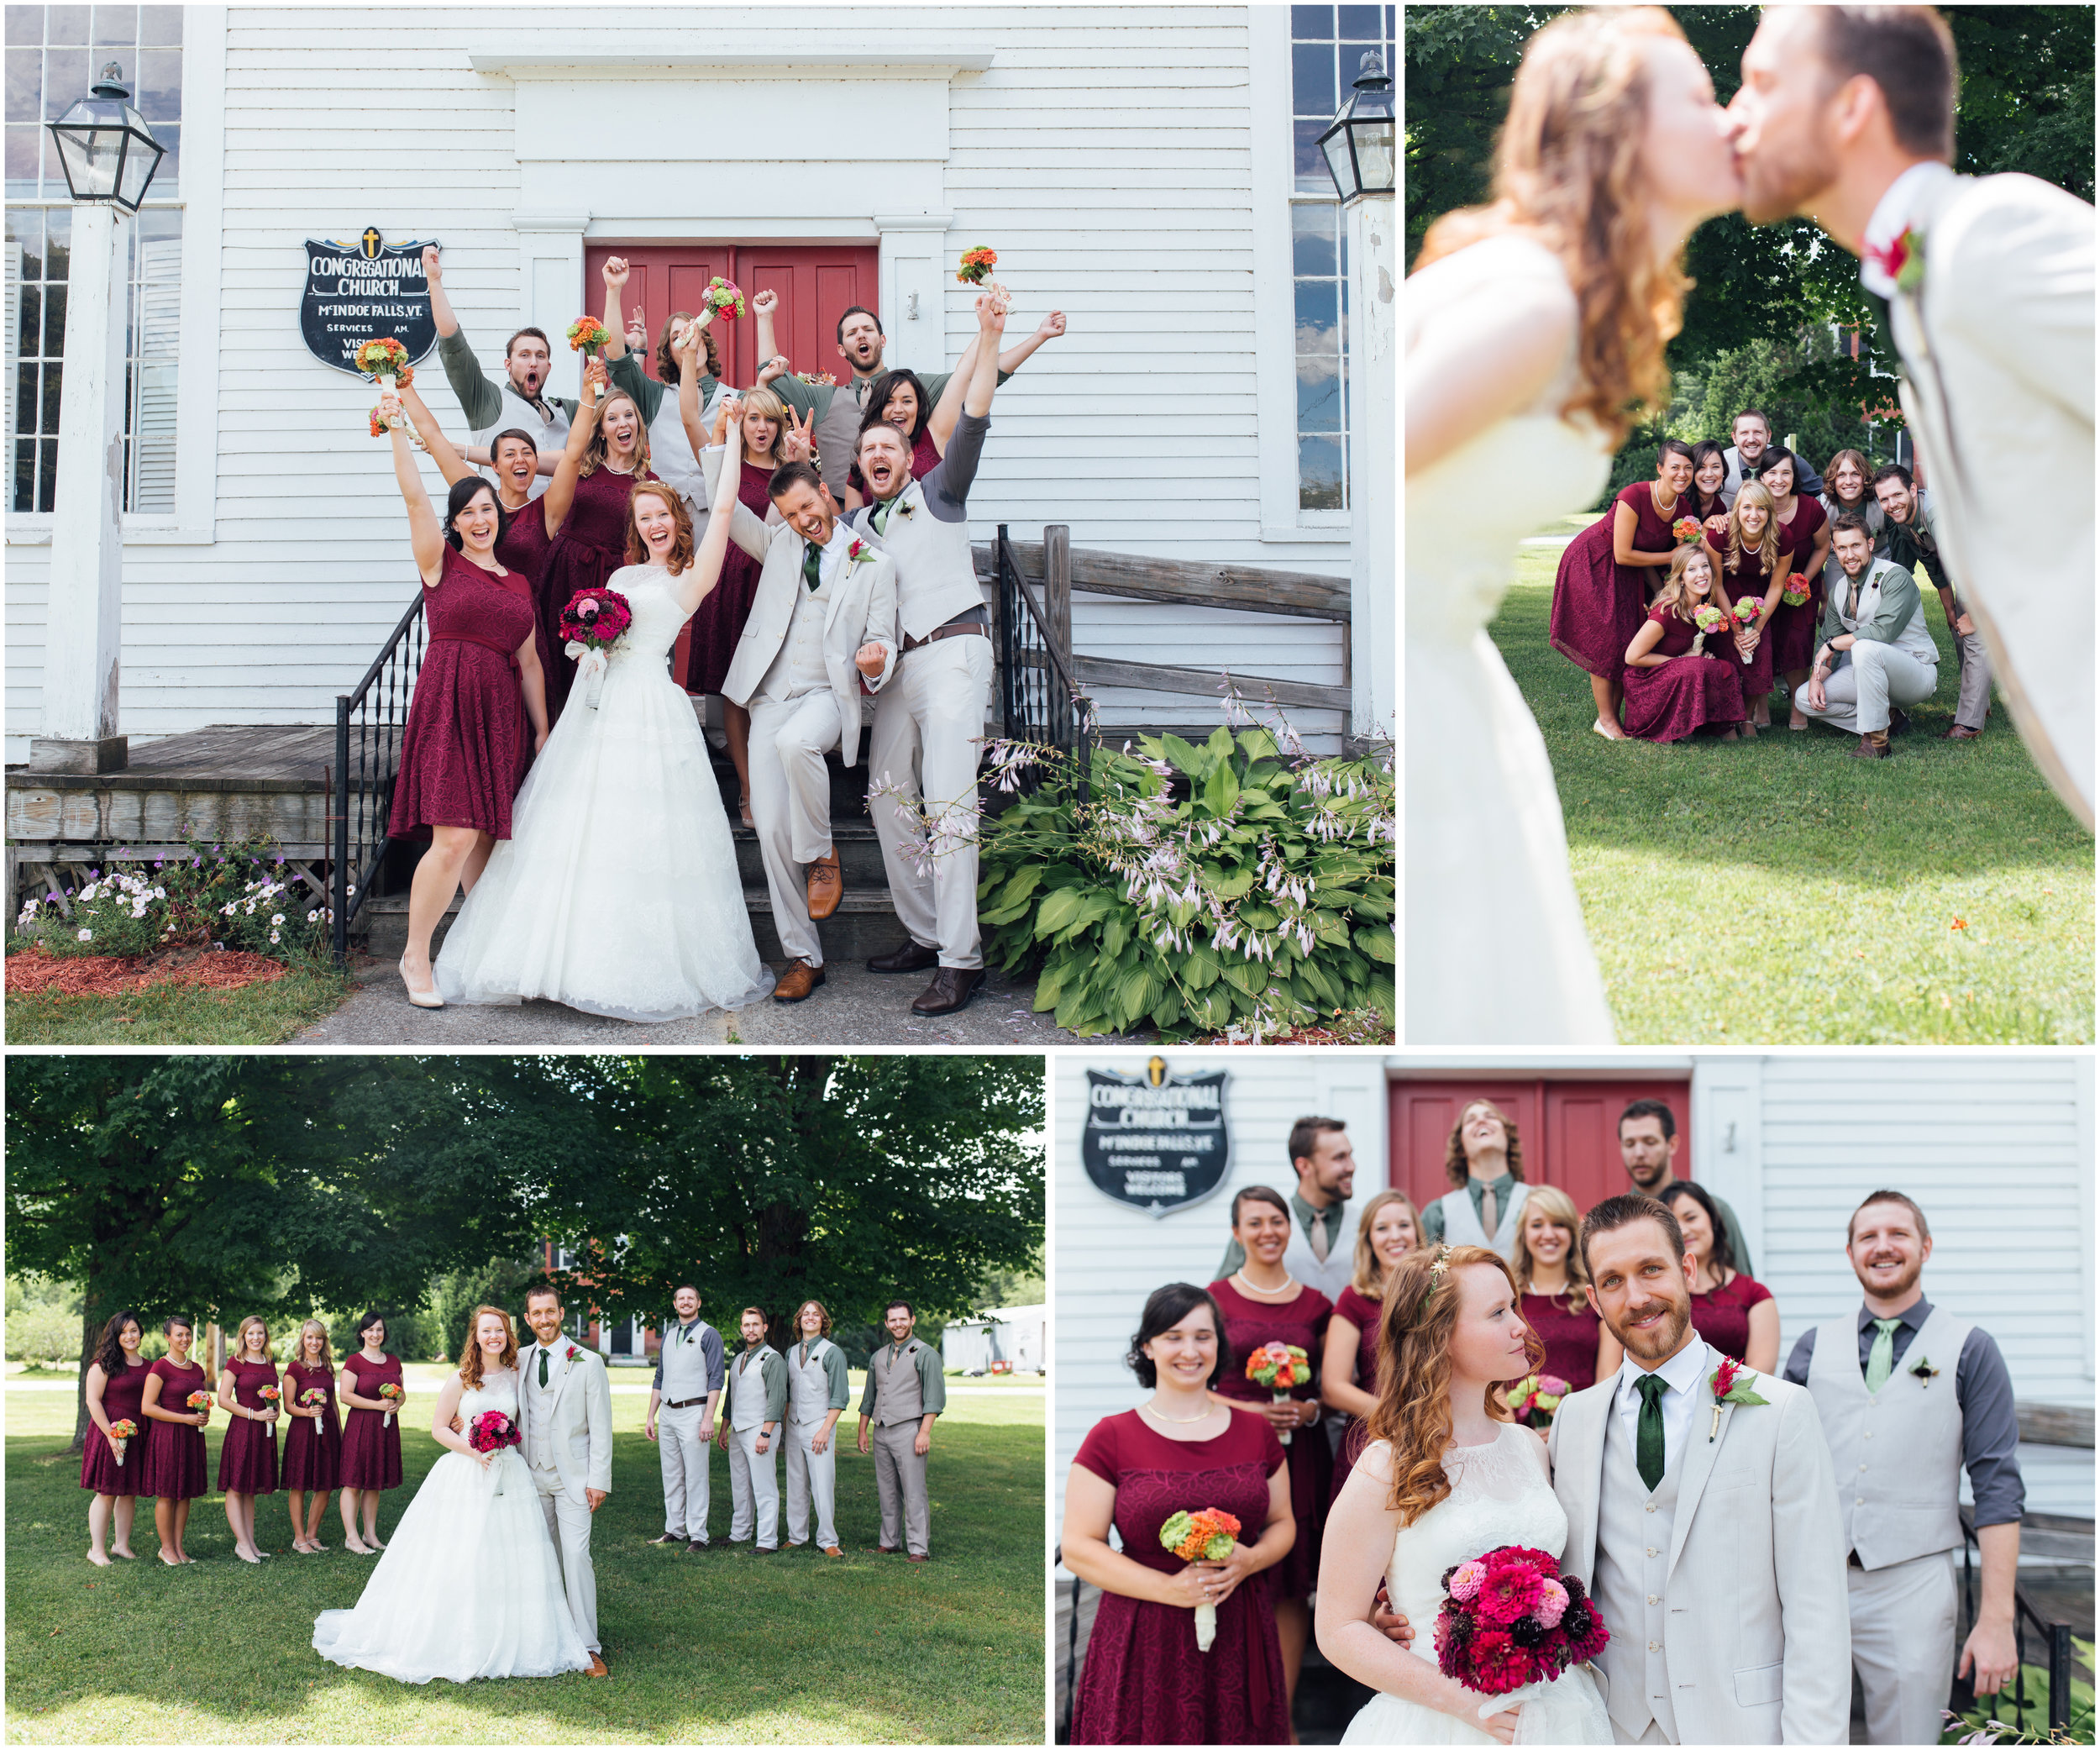 Wedding party in Vermont cheers and smiles and fun photography